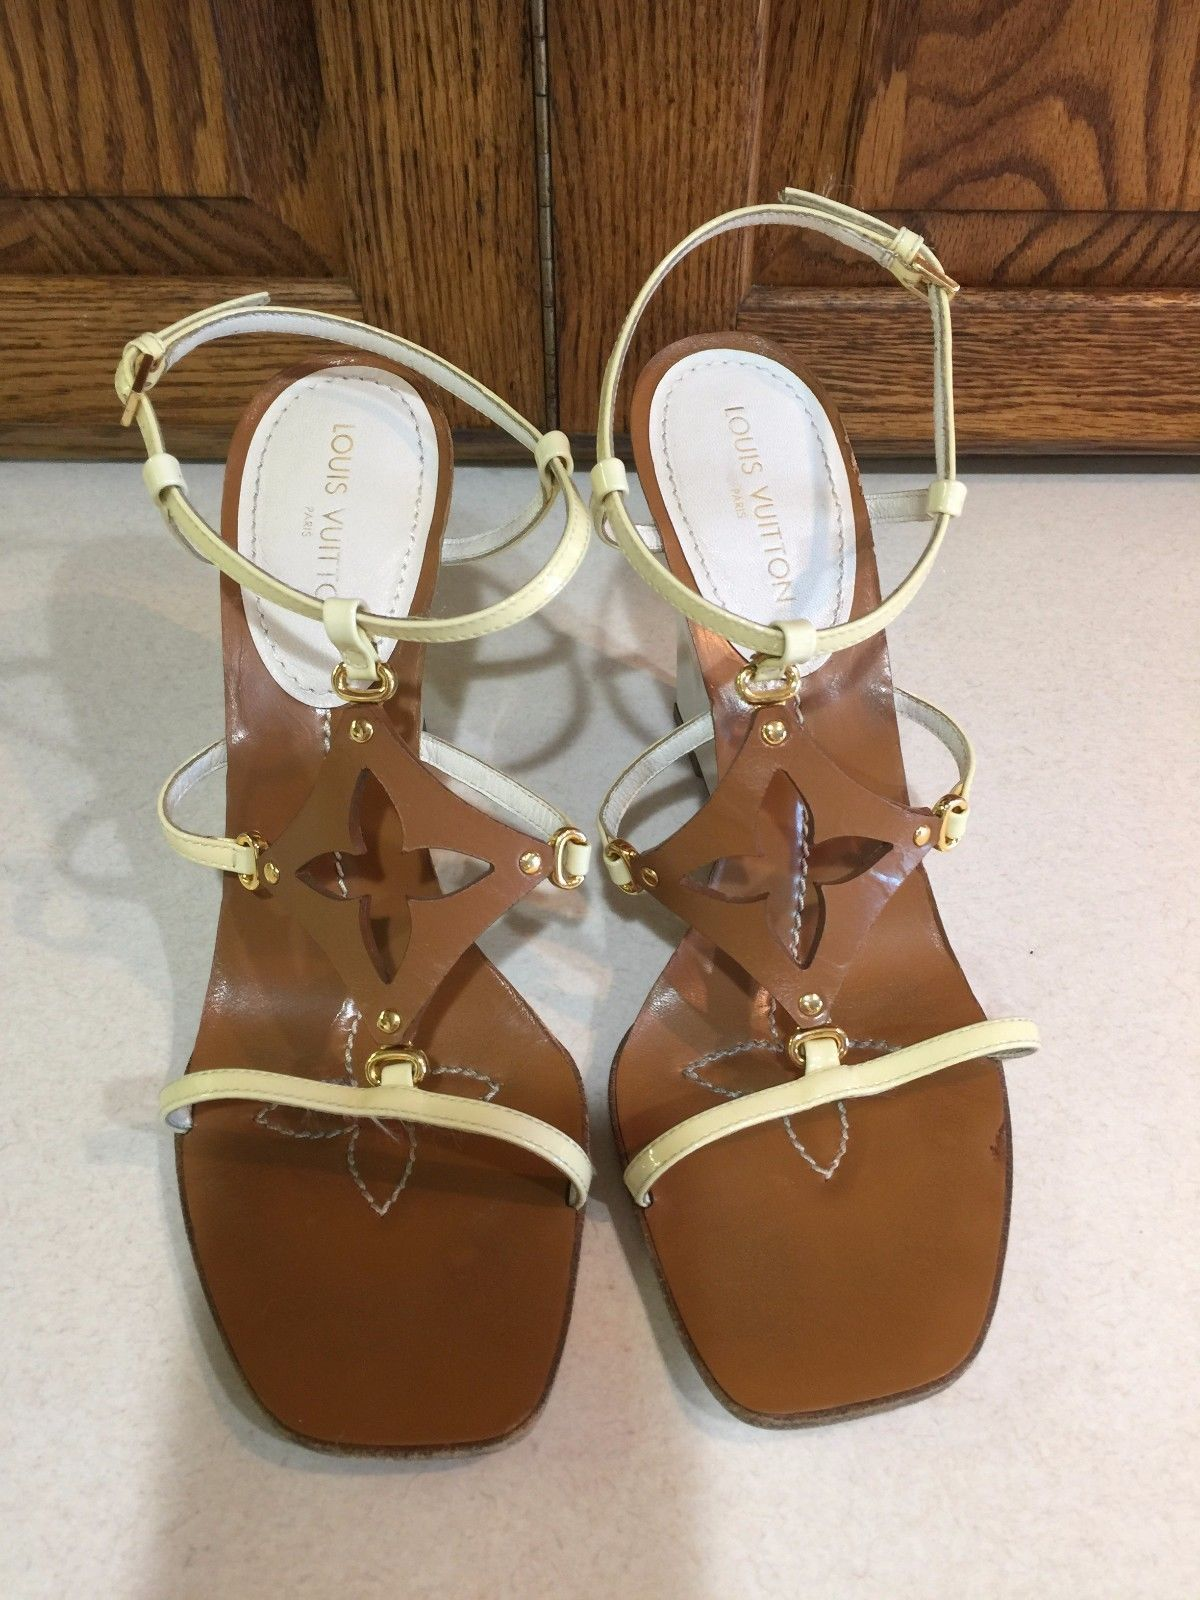 9e6ae832ff1 Louis Vuitton Beige and White Patent Leather Wedge Sandals Size 39 ...